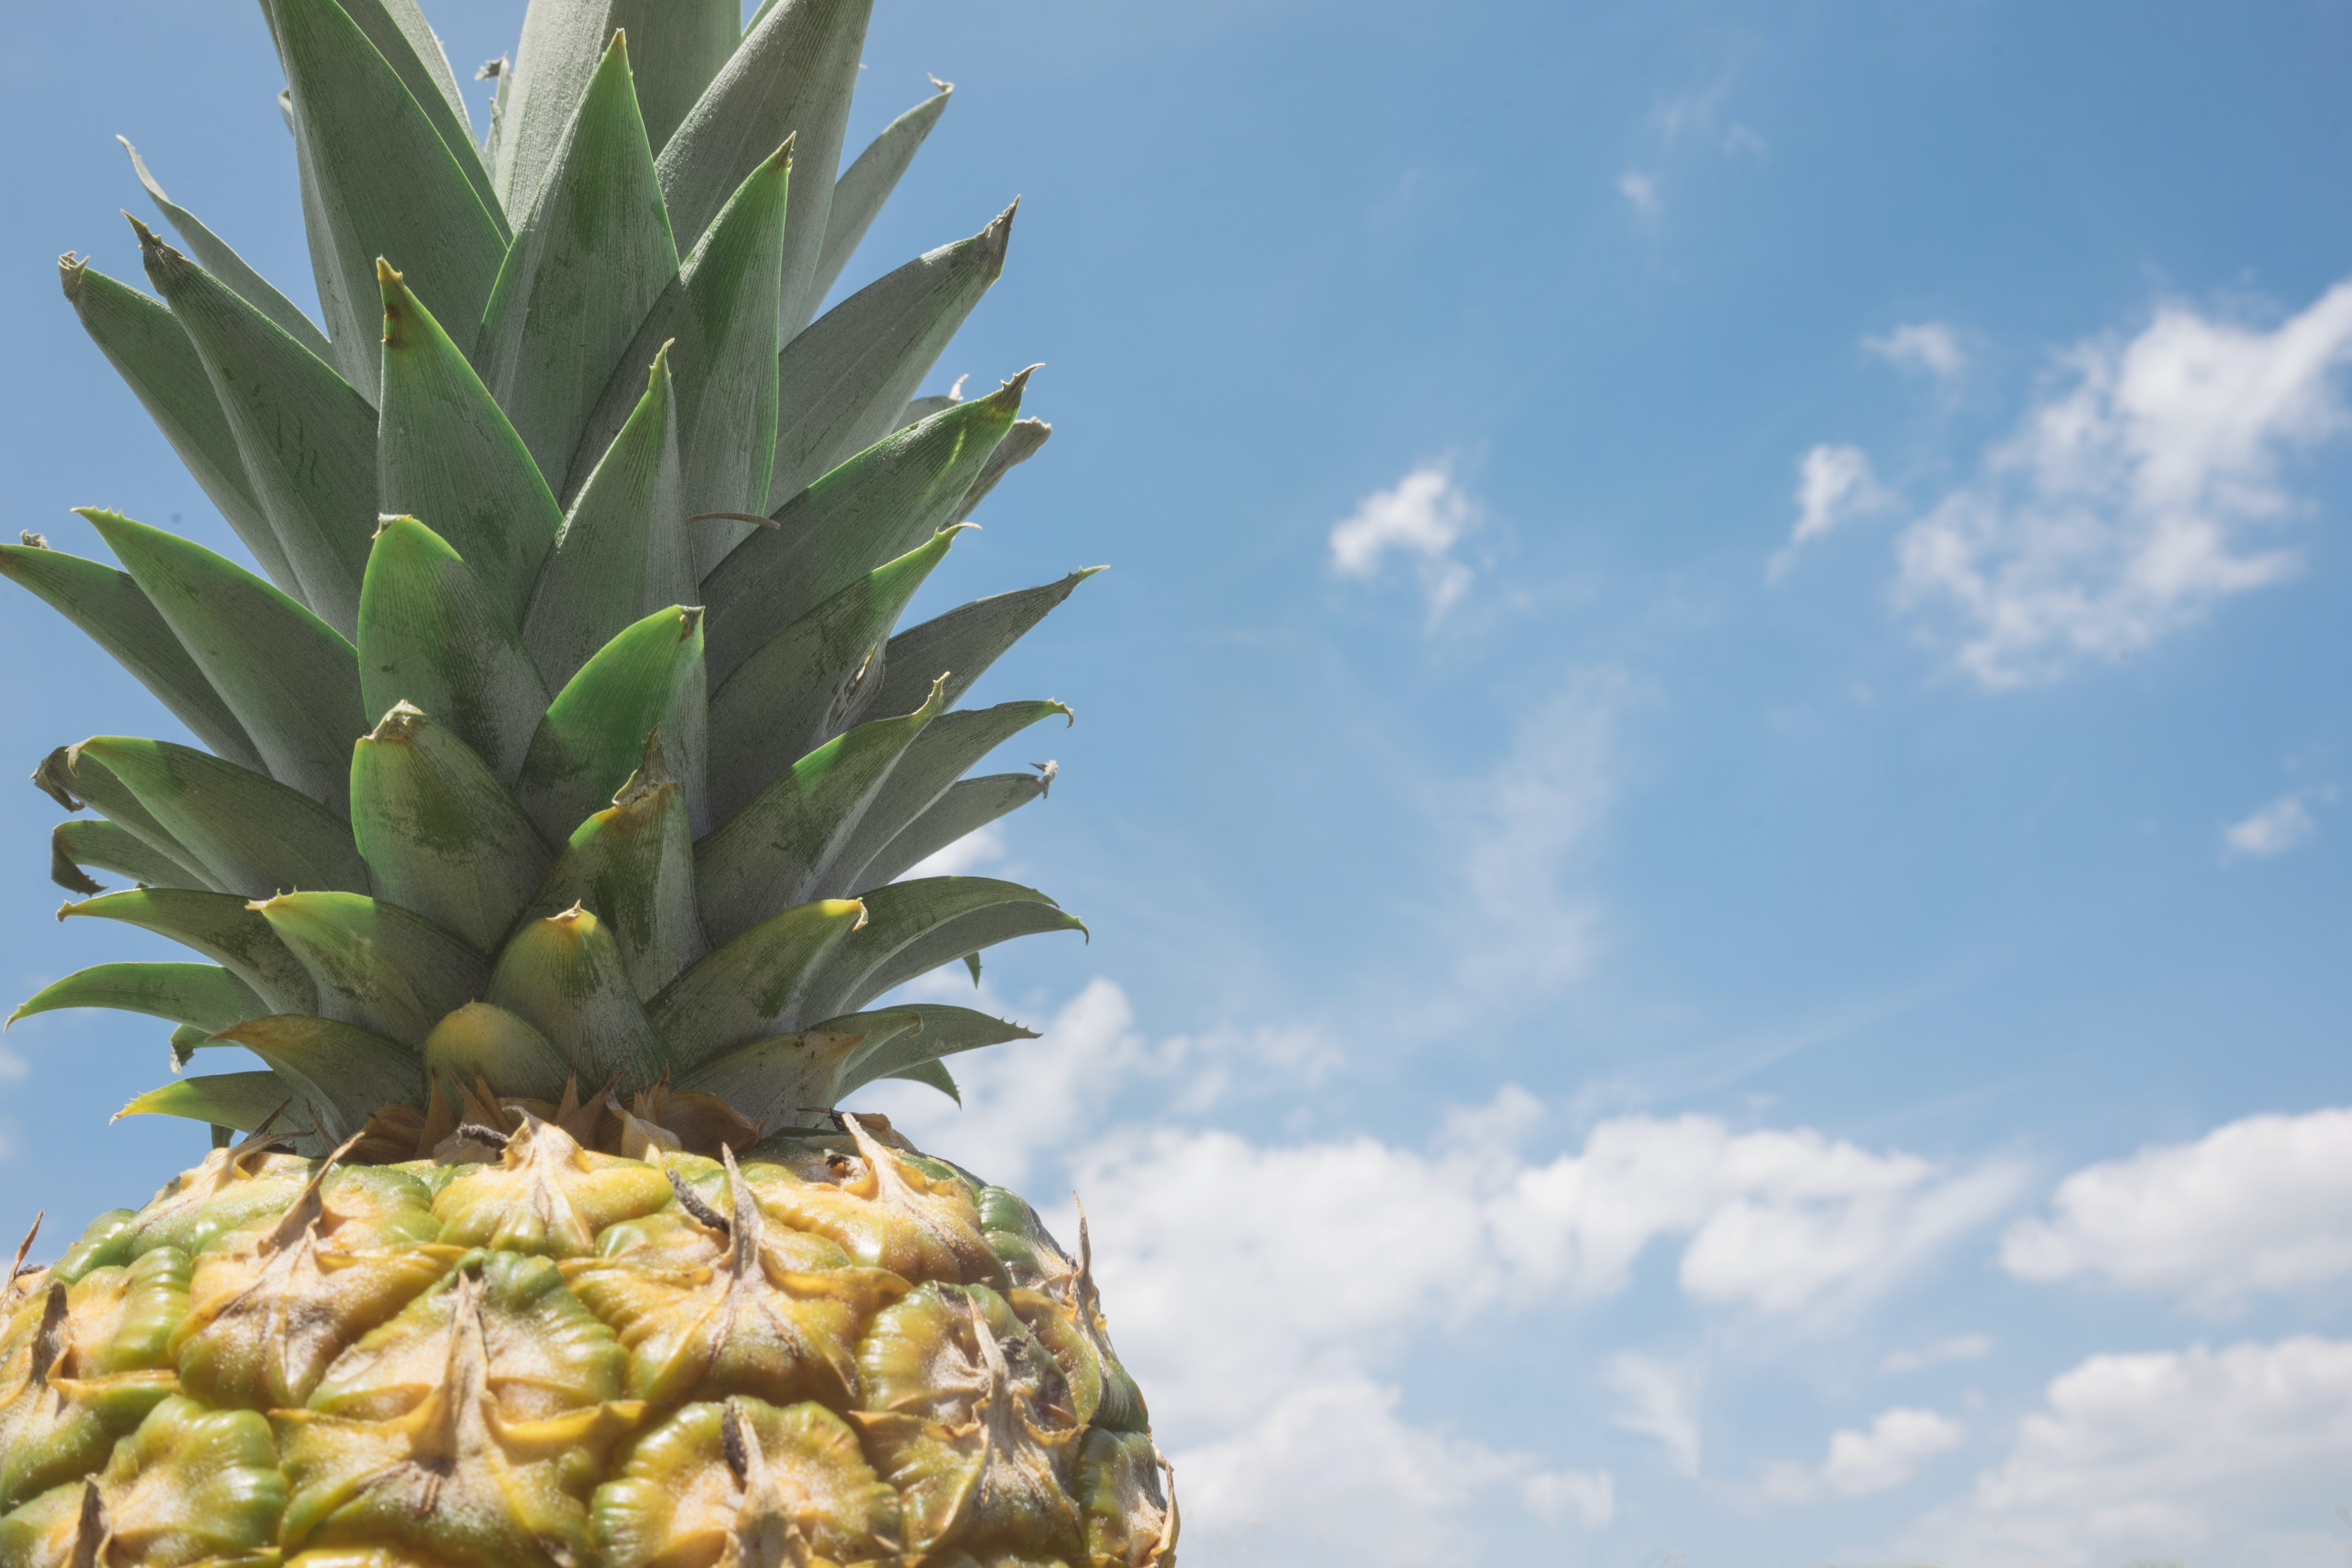 3 Pineapple Fruit On White And Grey Sand 183 Free Stock Photo